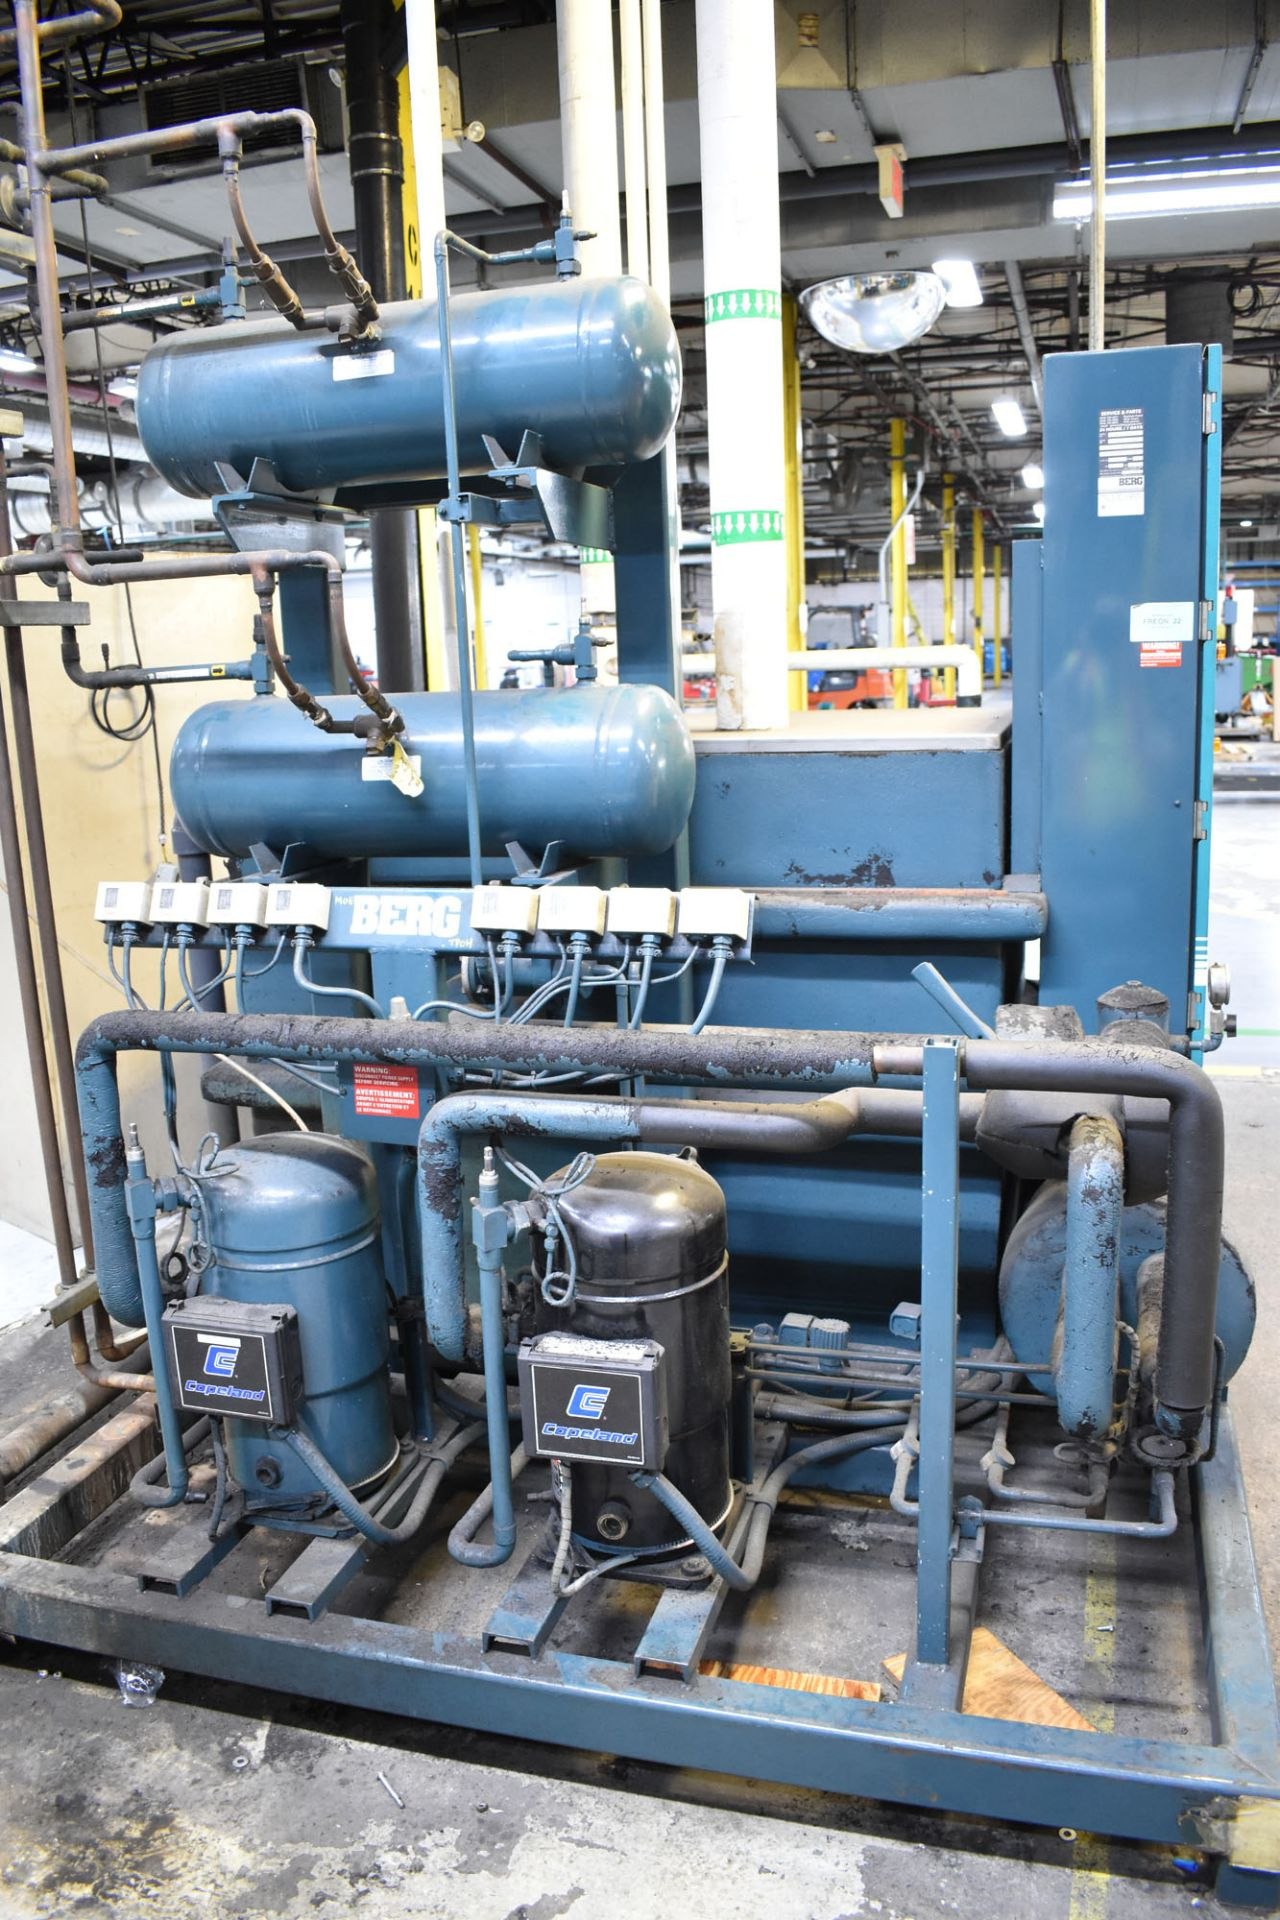 BERG AZ-30-2/1-3P-R SKID MOUNTED INDUSTRIAL CHILLER WITH 30 TON CAPACITY, 55 HP, BERG SC6 TOUCH- - Image 4 of 6